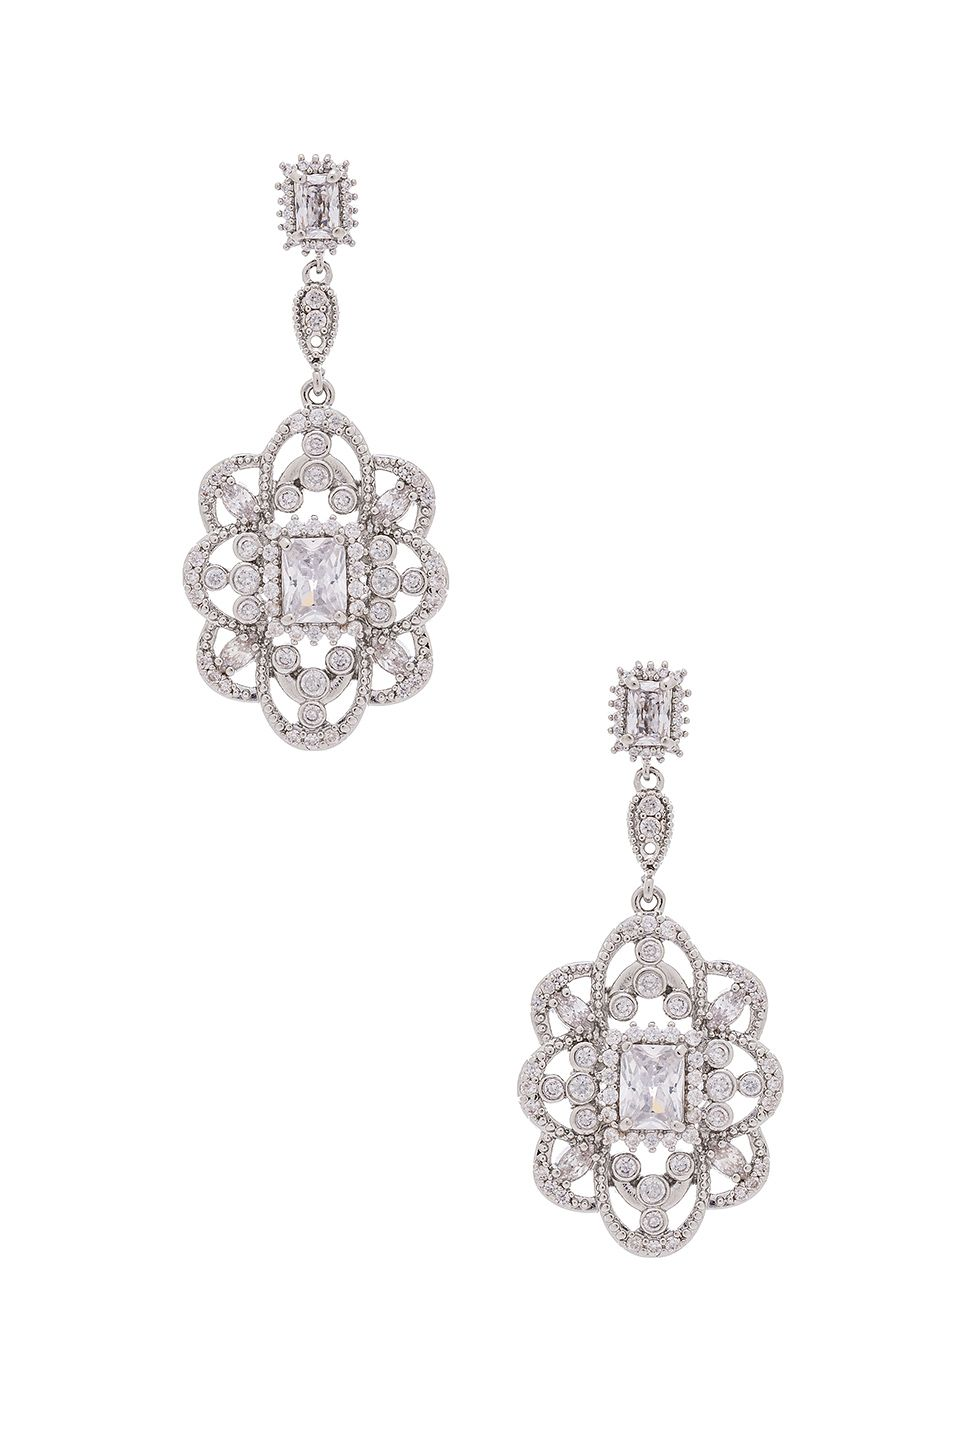 Samantha Wills Summer Afterglow Earrings in Silver